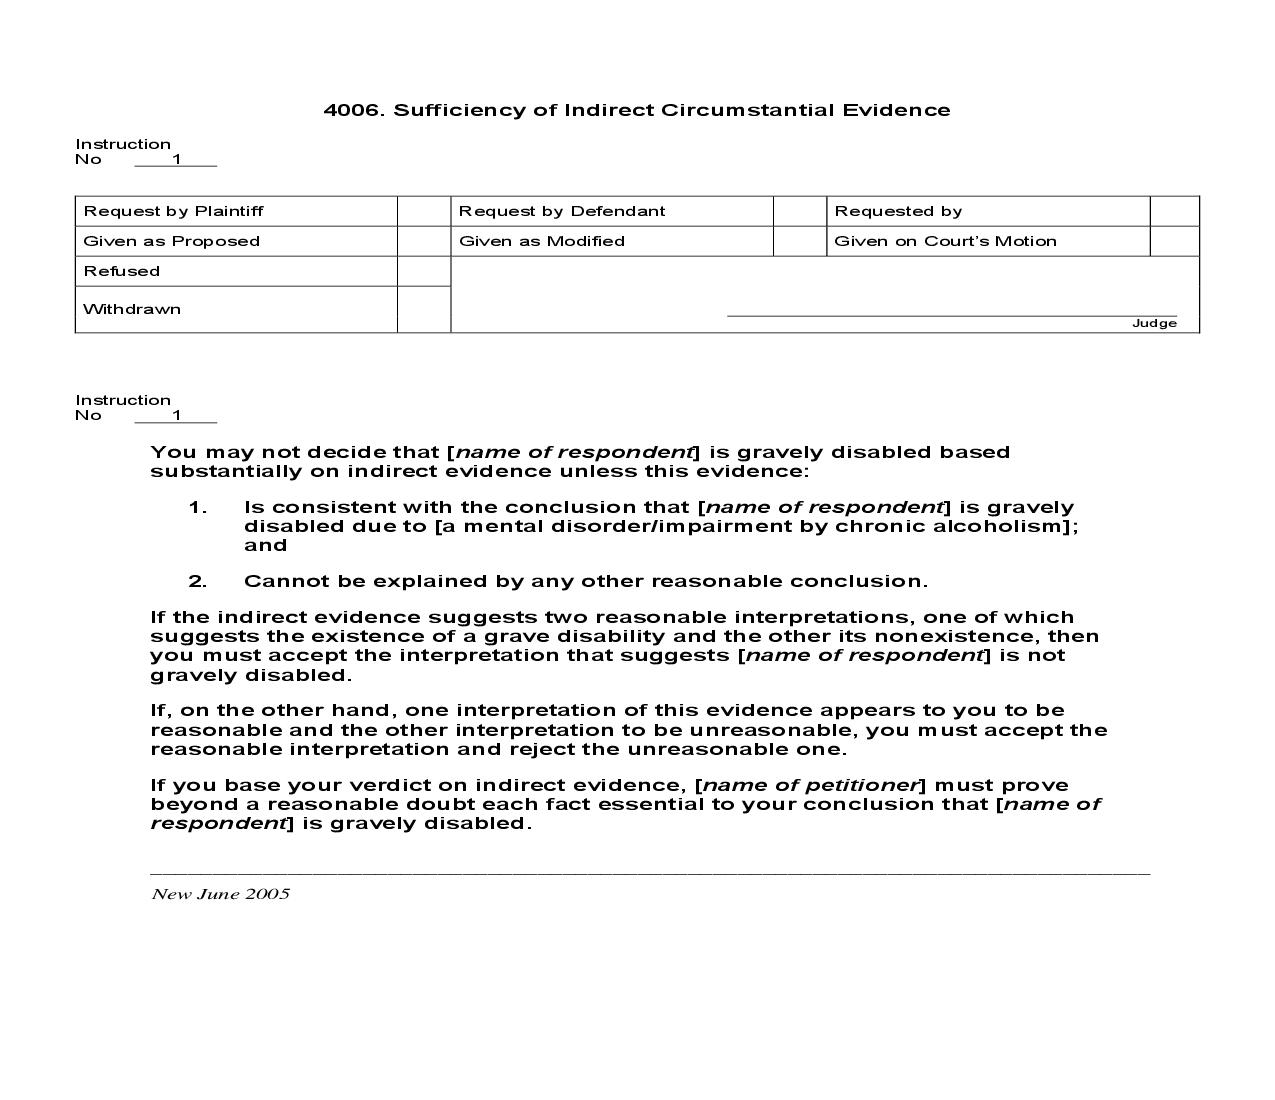 4006. Sufficiency of Indirect Circumstantial Evidence   Pdf Doc Docx   Jury Instructions